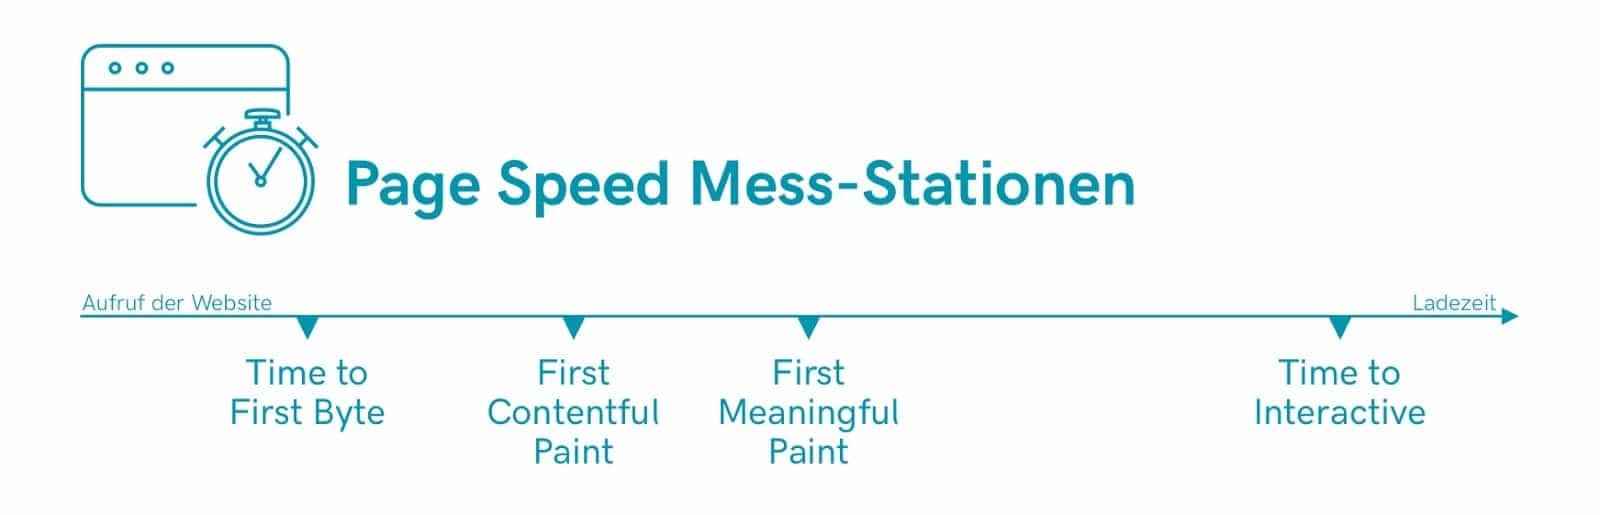 Page Speed Mess-Stationen